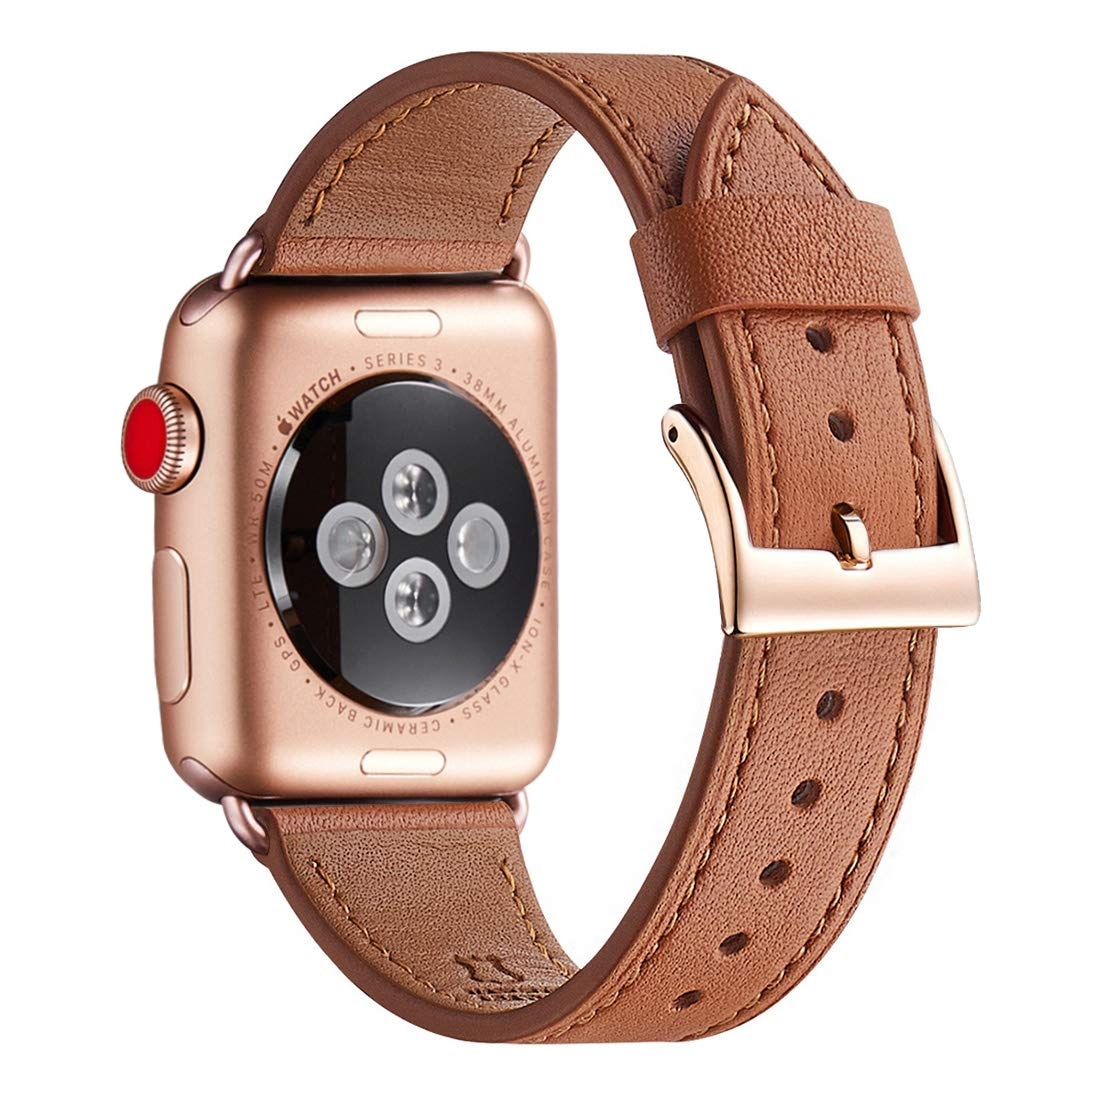 WFEAGL Compatible iWatch Band 42mm 44mm, Top Grain Leather Band with Gold Adapter (The Same as Series 5/4/3 with Gold Aluminum Case in Color) for iWatch Series 5/4/3/2/1 (Brown Band+Rosegold Adapter)